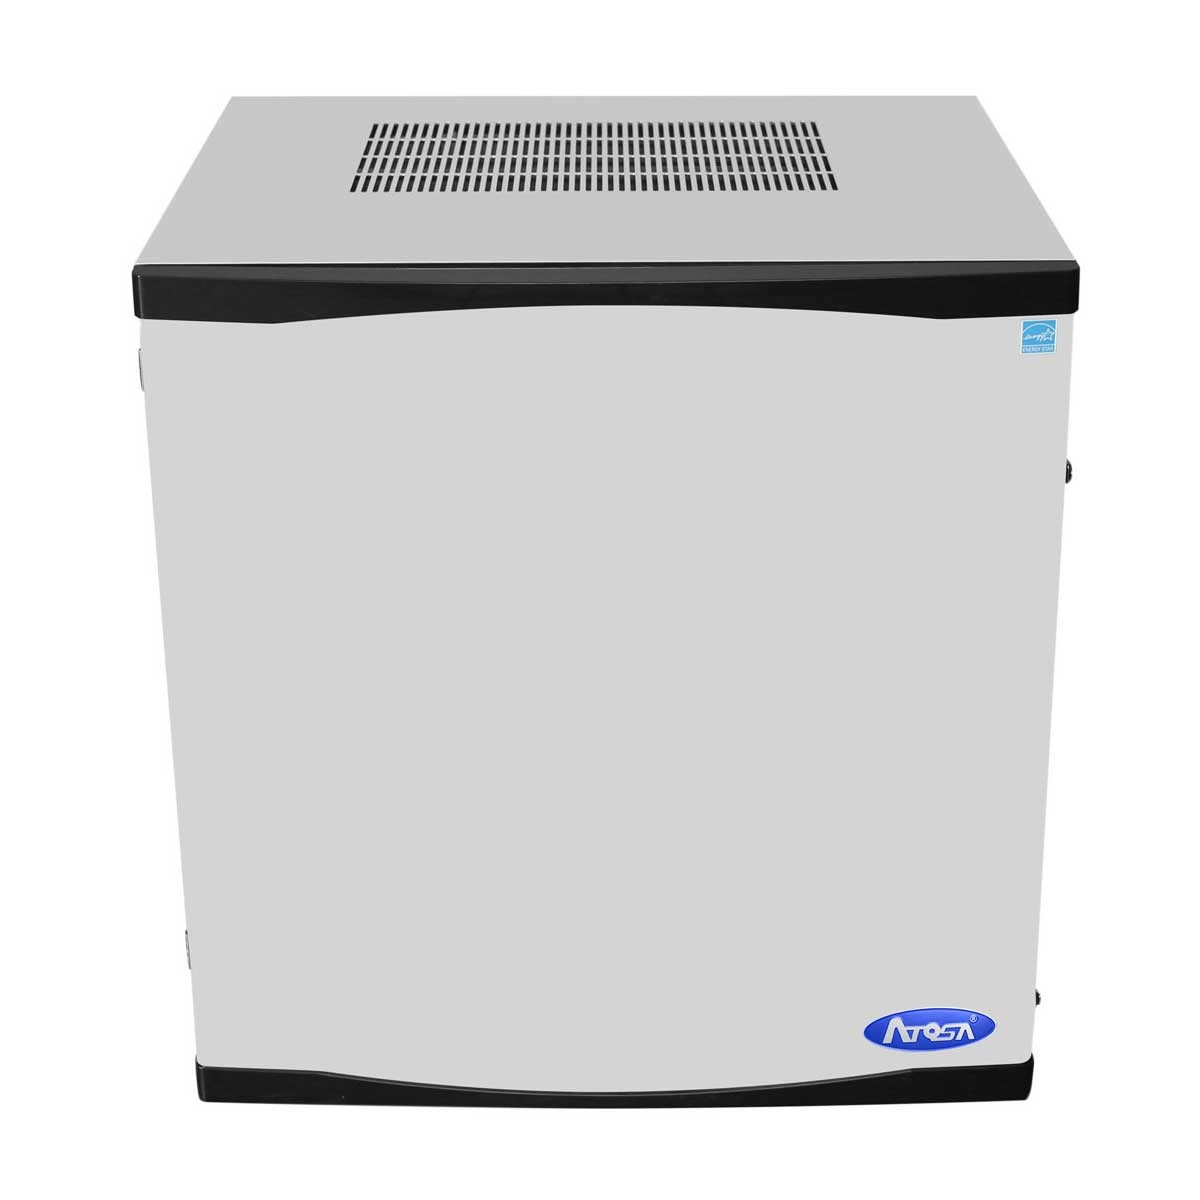 Atosa YR800-AP-261 Commercial Ice Maker 800 Lb. with 400 lb. Storage Bin